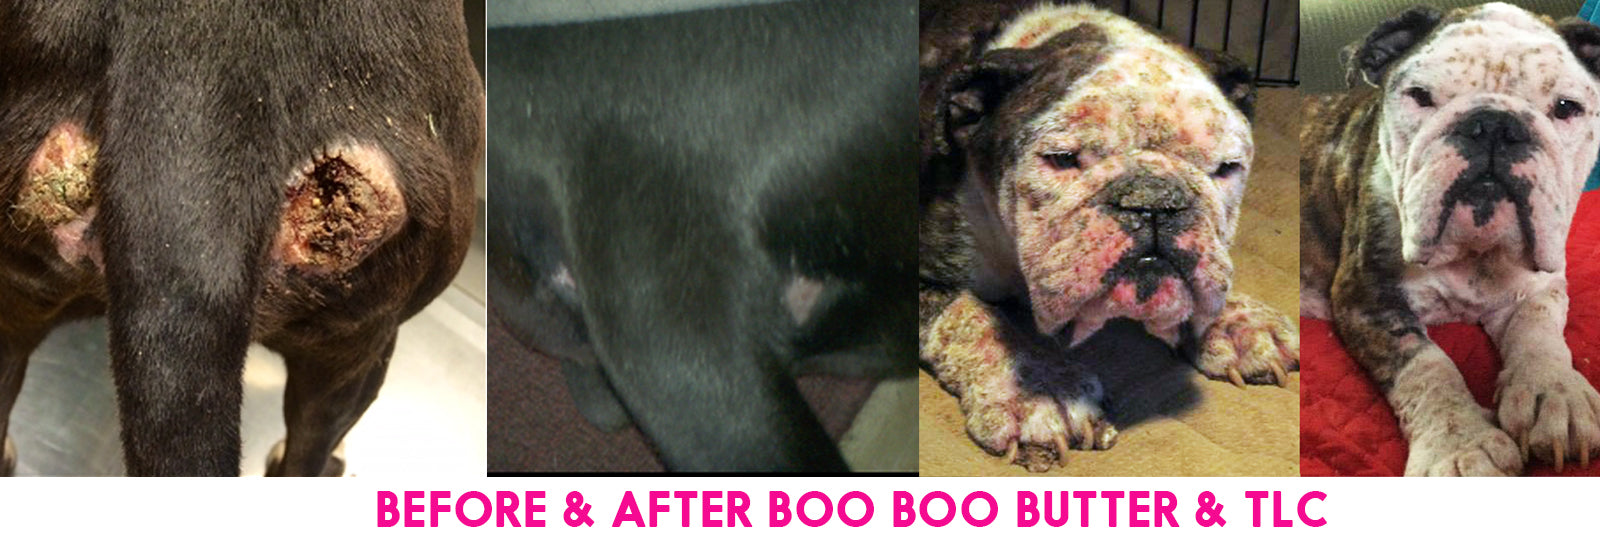 Before & After BOO BOO BUTTER